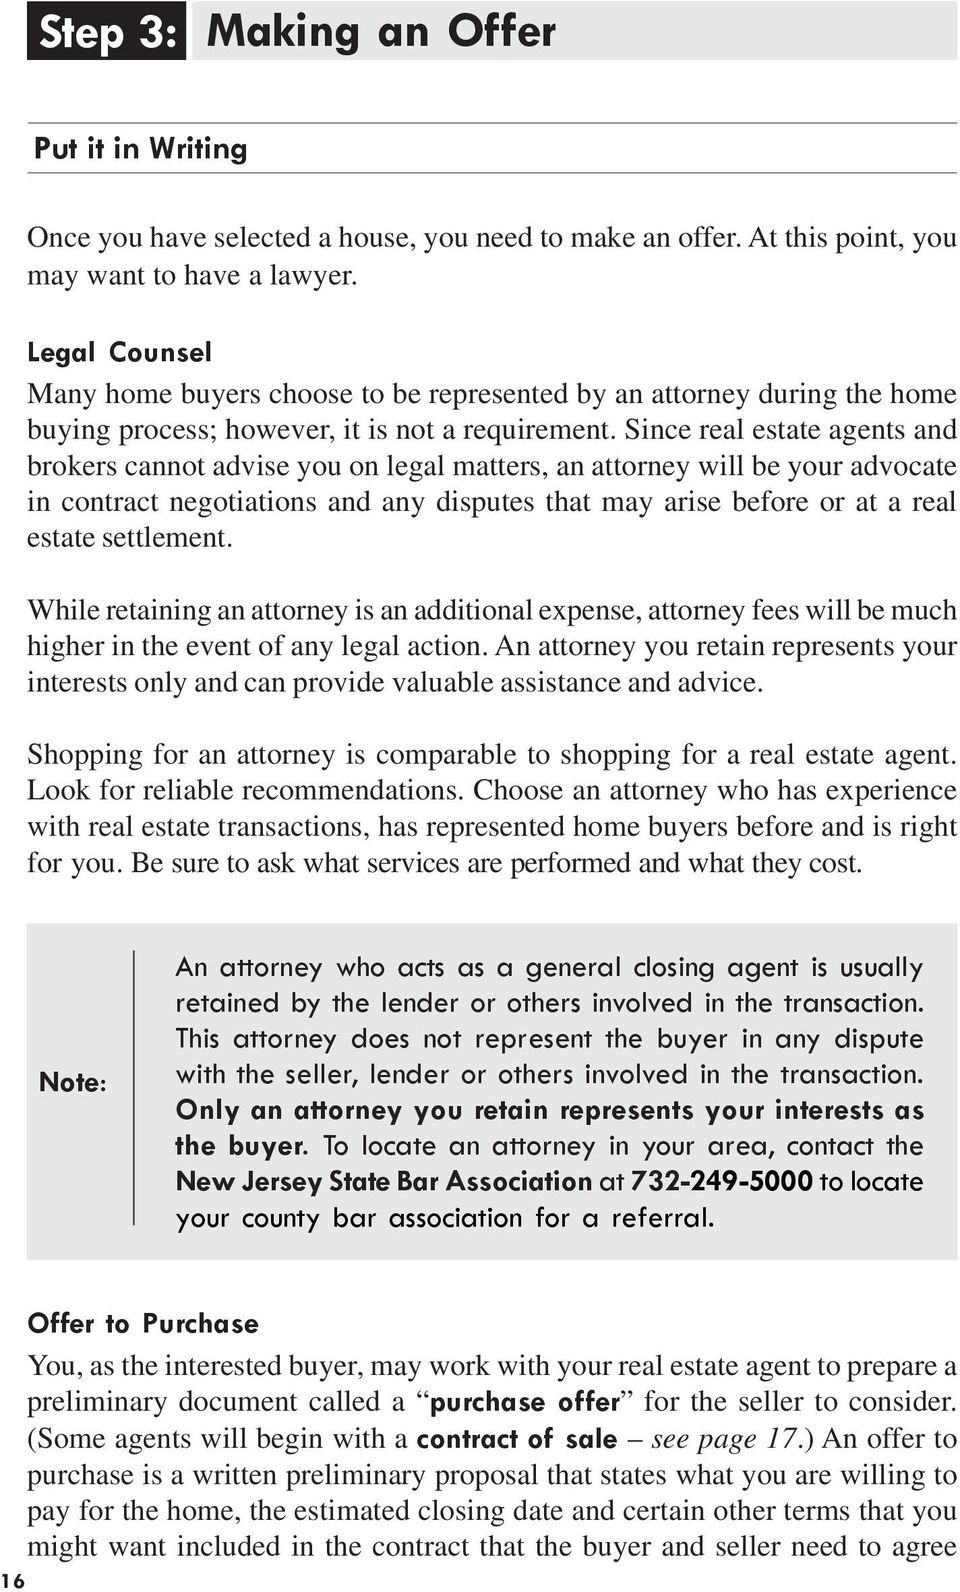 Since real estate agents and brokers cannot advise you on legal matters, an attorney will be your advocate in contract negotiations and any disputes that may arise before or at a real estate